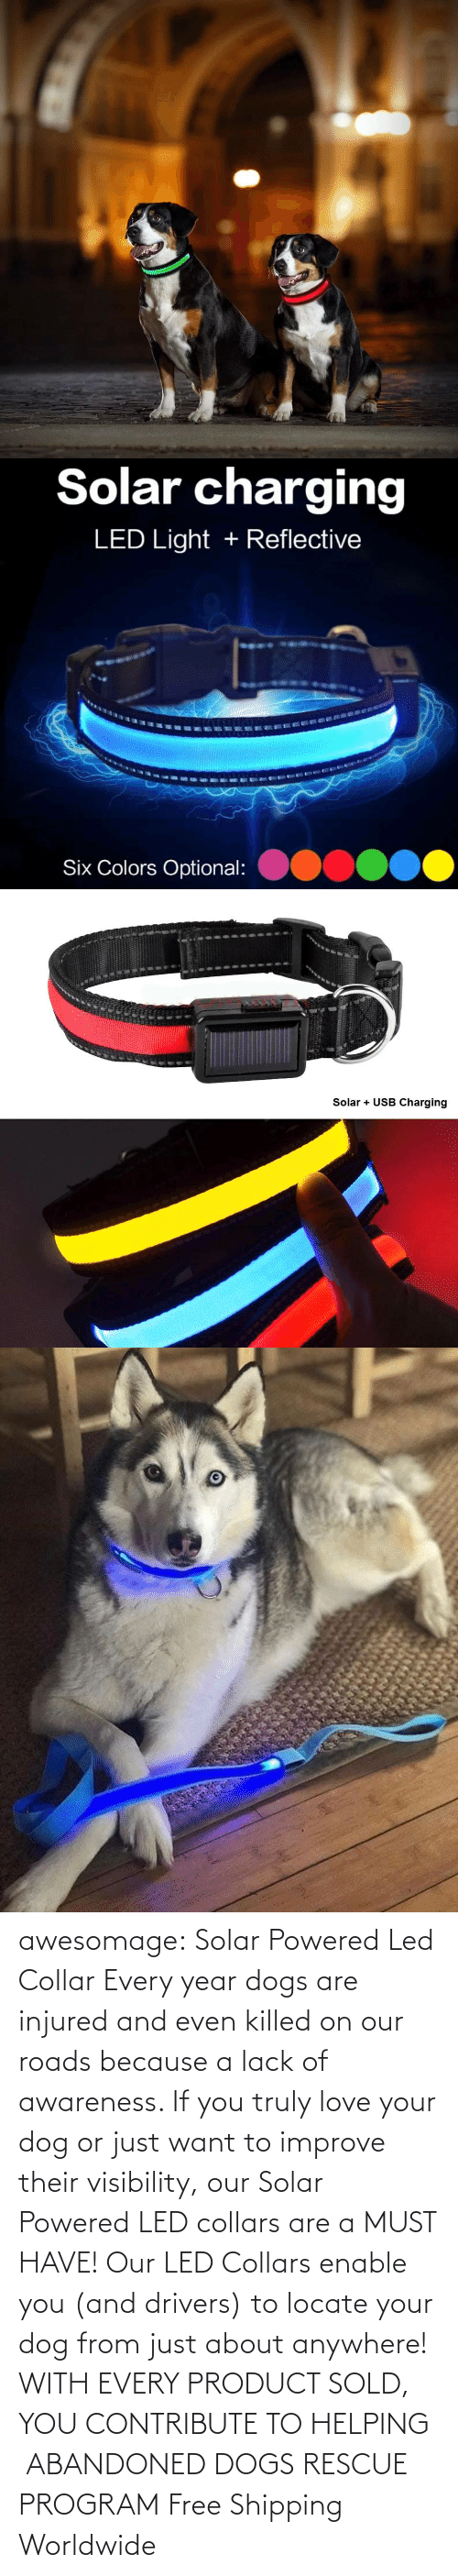 product: awesomage: Solar Powered Led Collar   Every year dogs are injured and even killed on our roads because a lack of awareness. If you truly love your dog or just want to improve their visibility, our Solar Powered LED collars are a MUST HAVE!   Our LED Collars enable you (and drivers) to locate your dog from just about anywhere!     WITH EVERY PRODUCT SOLD, YOU CONTRIBUTE TO HELPING  ABANDONED DOGS RESCUE PROGRAM     Free Shipping Worldwide